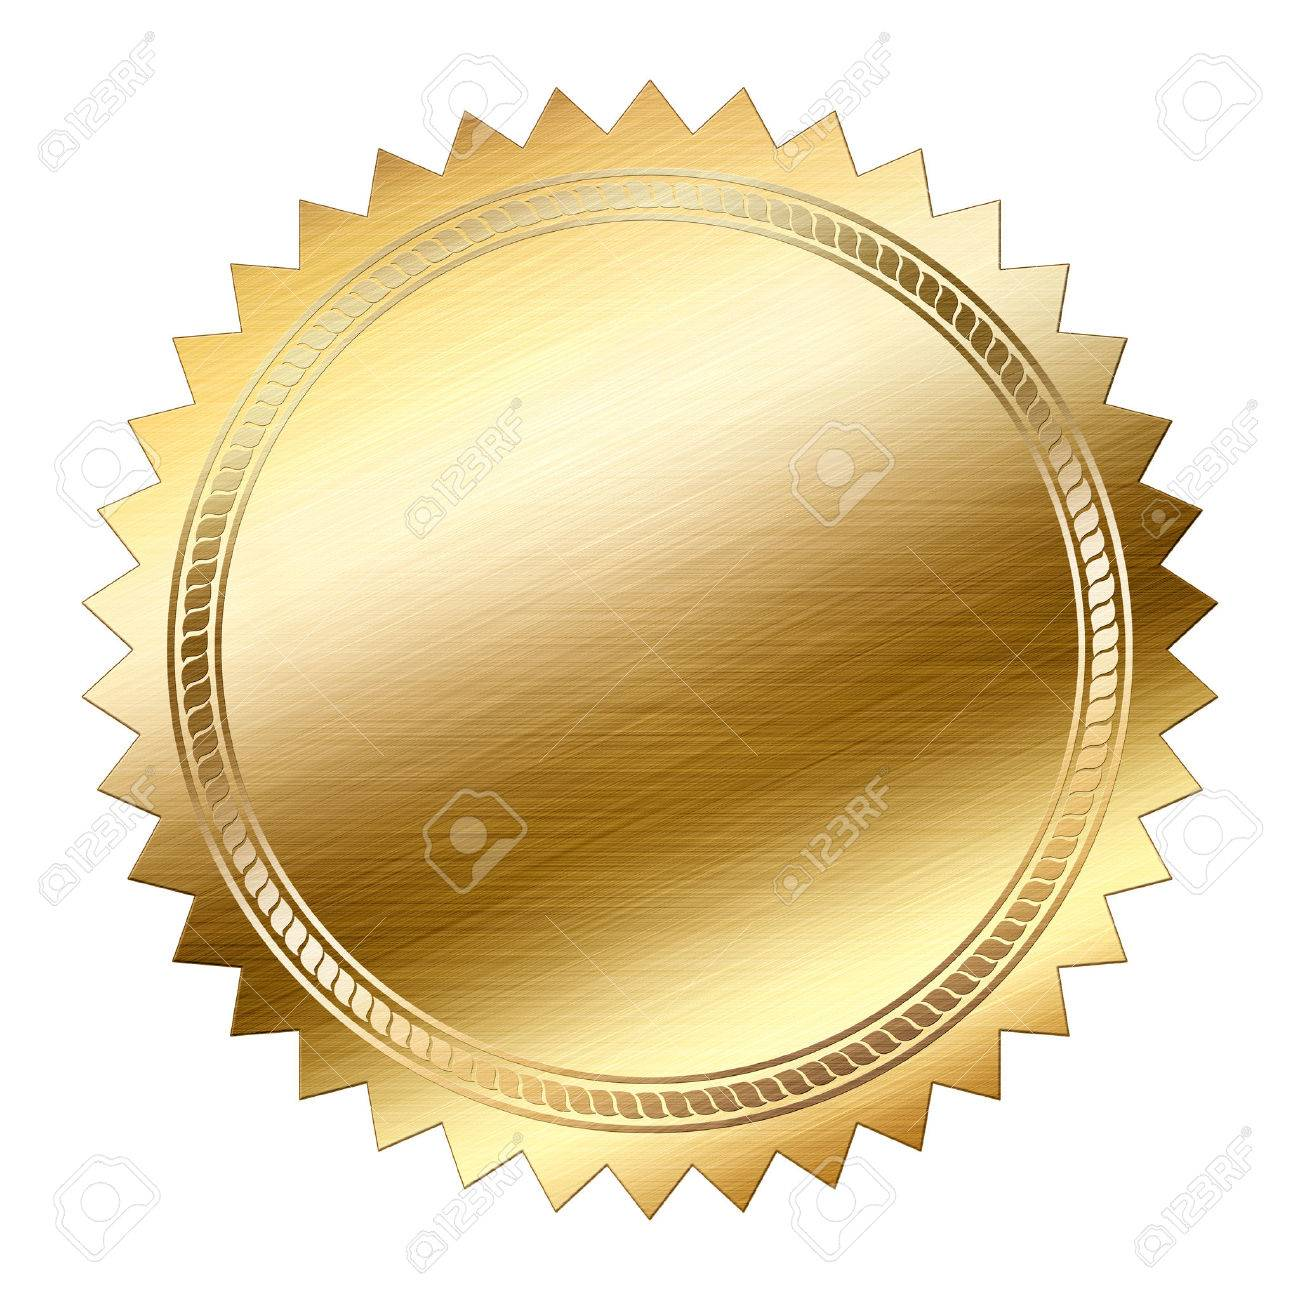 Golden Seal isolated on white background - 37404723